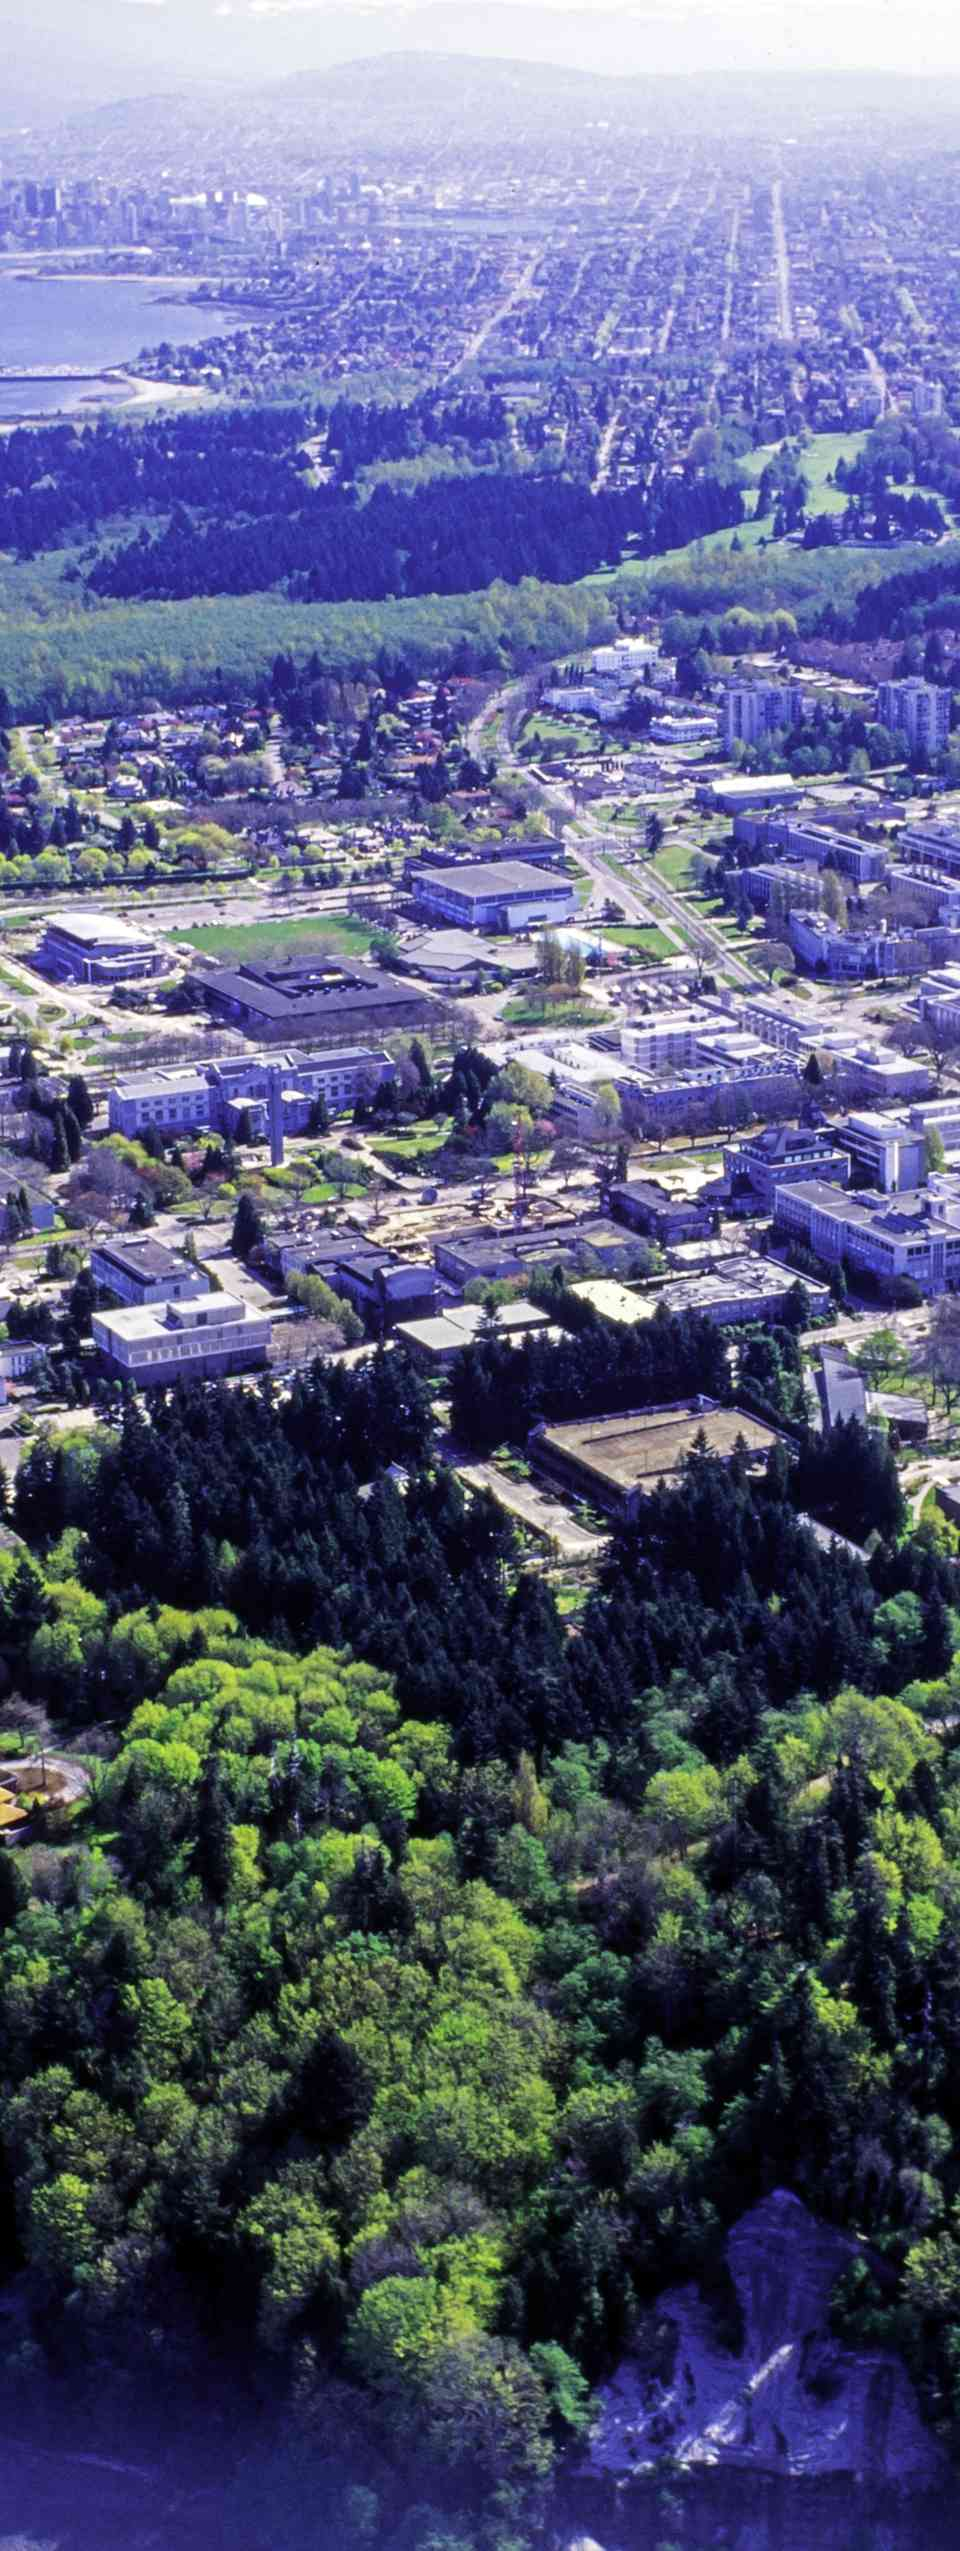 Global aerial view of the University of British Columbia, buildings and campus